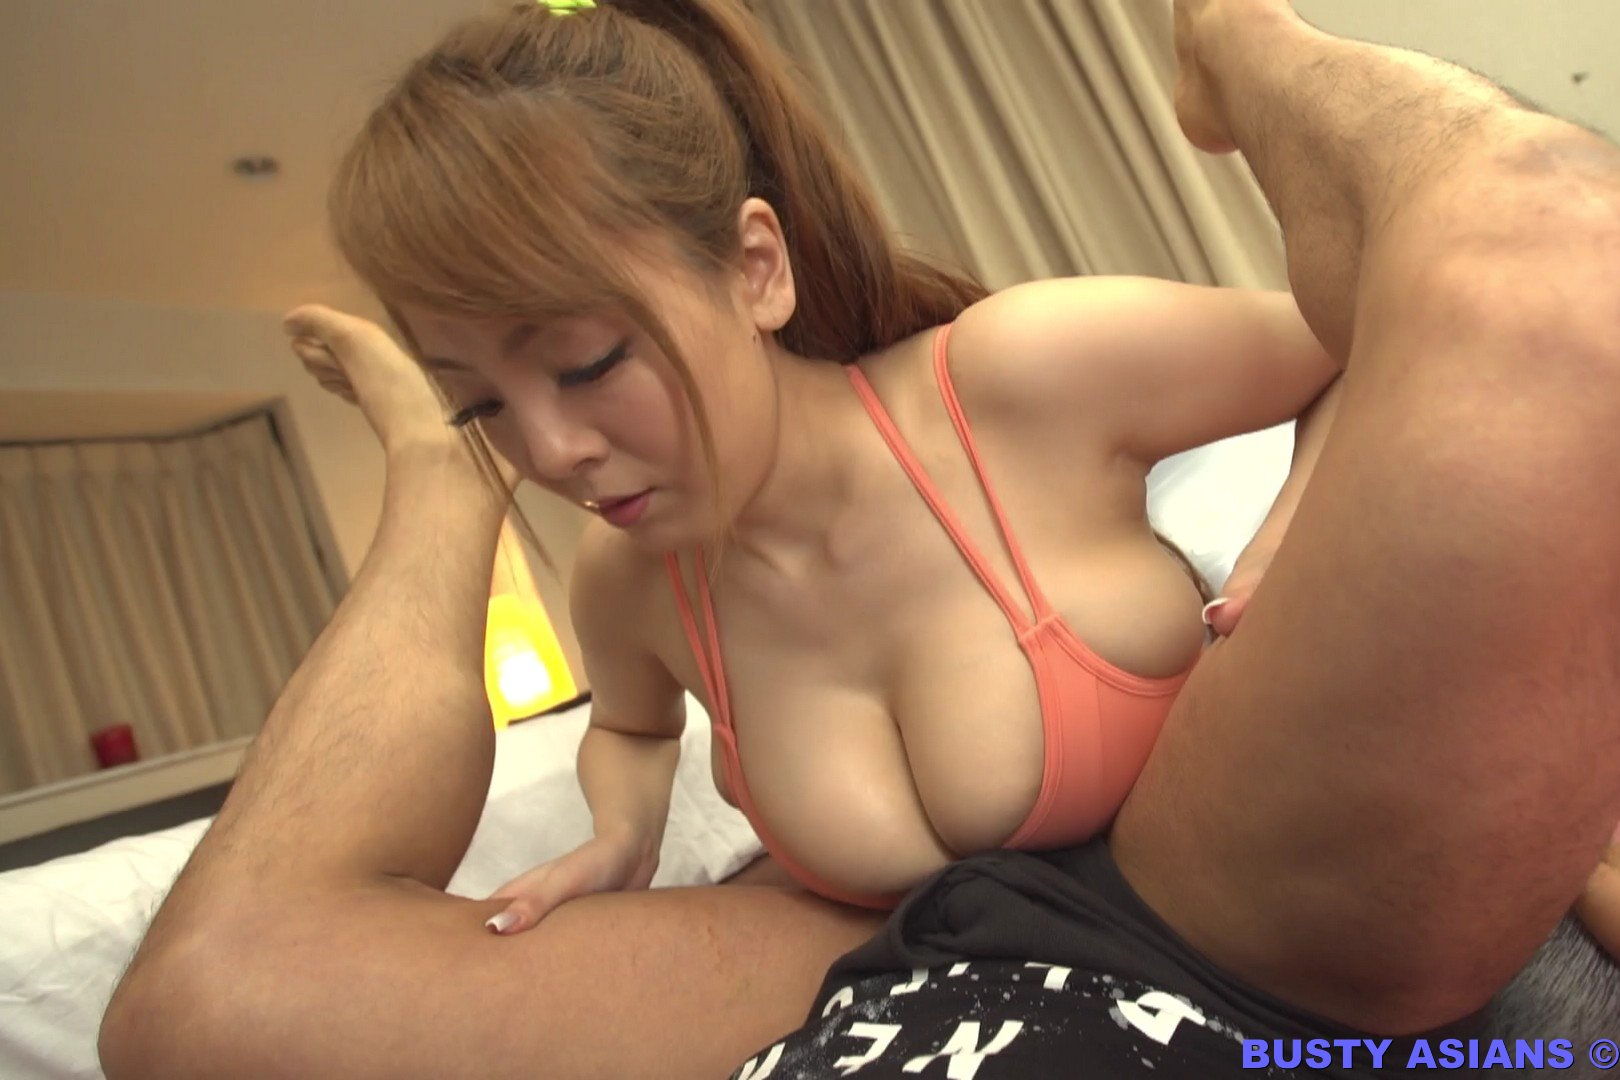 https://piratepass.pw/wp-content/uploads/2021/04/busty-asians.com-ssRiUNwHZlZXNYuMFKbiCTUO.jpg pass